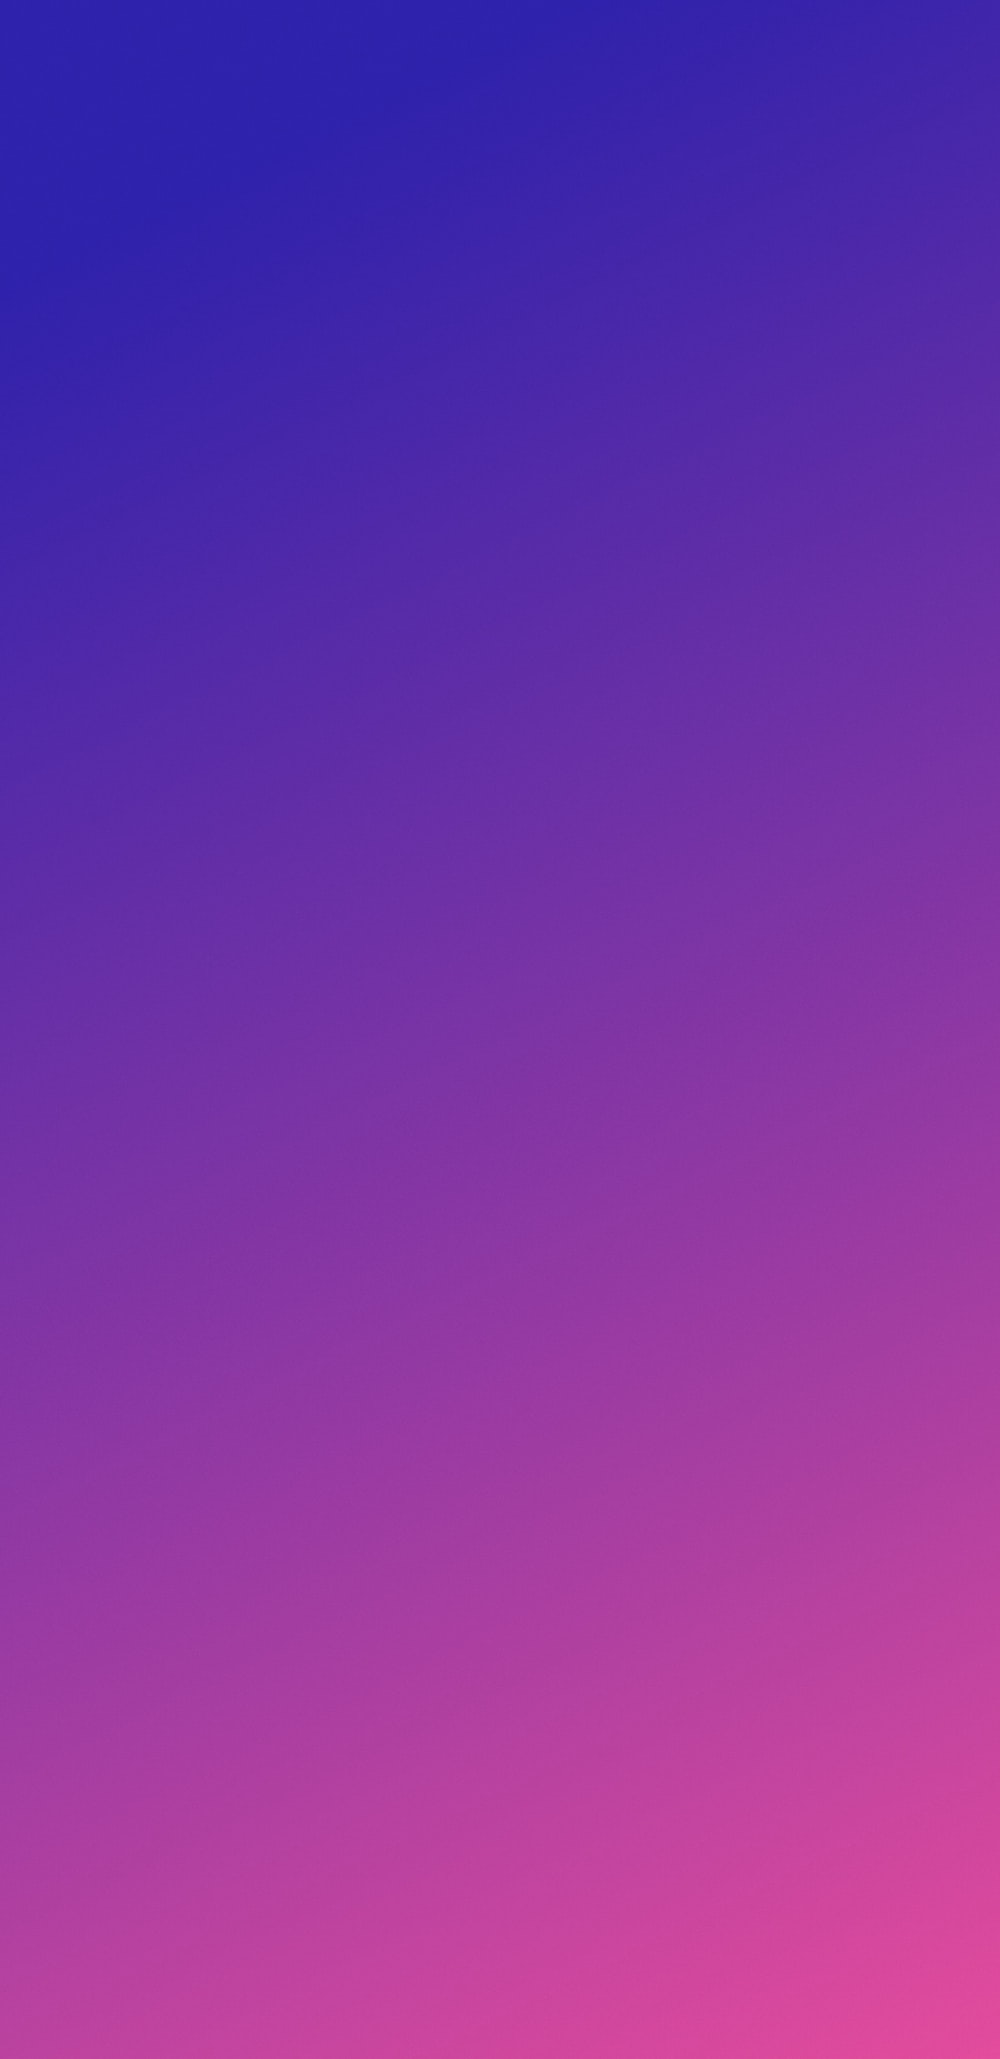 Purple Wallpapers Free Hd Download 500 Hq Unsplash